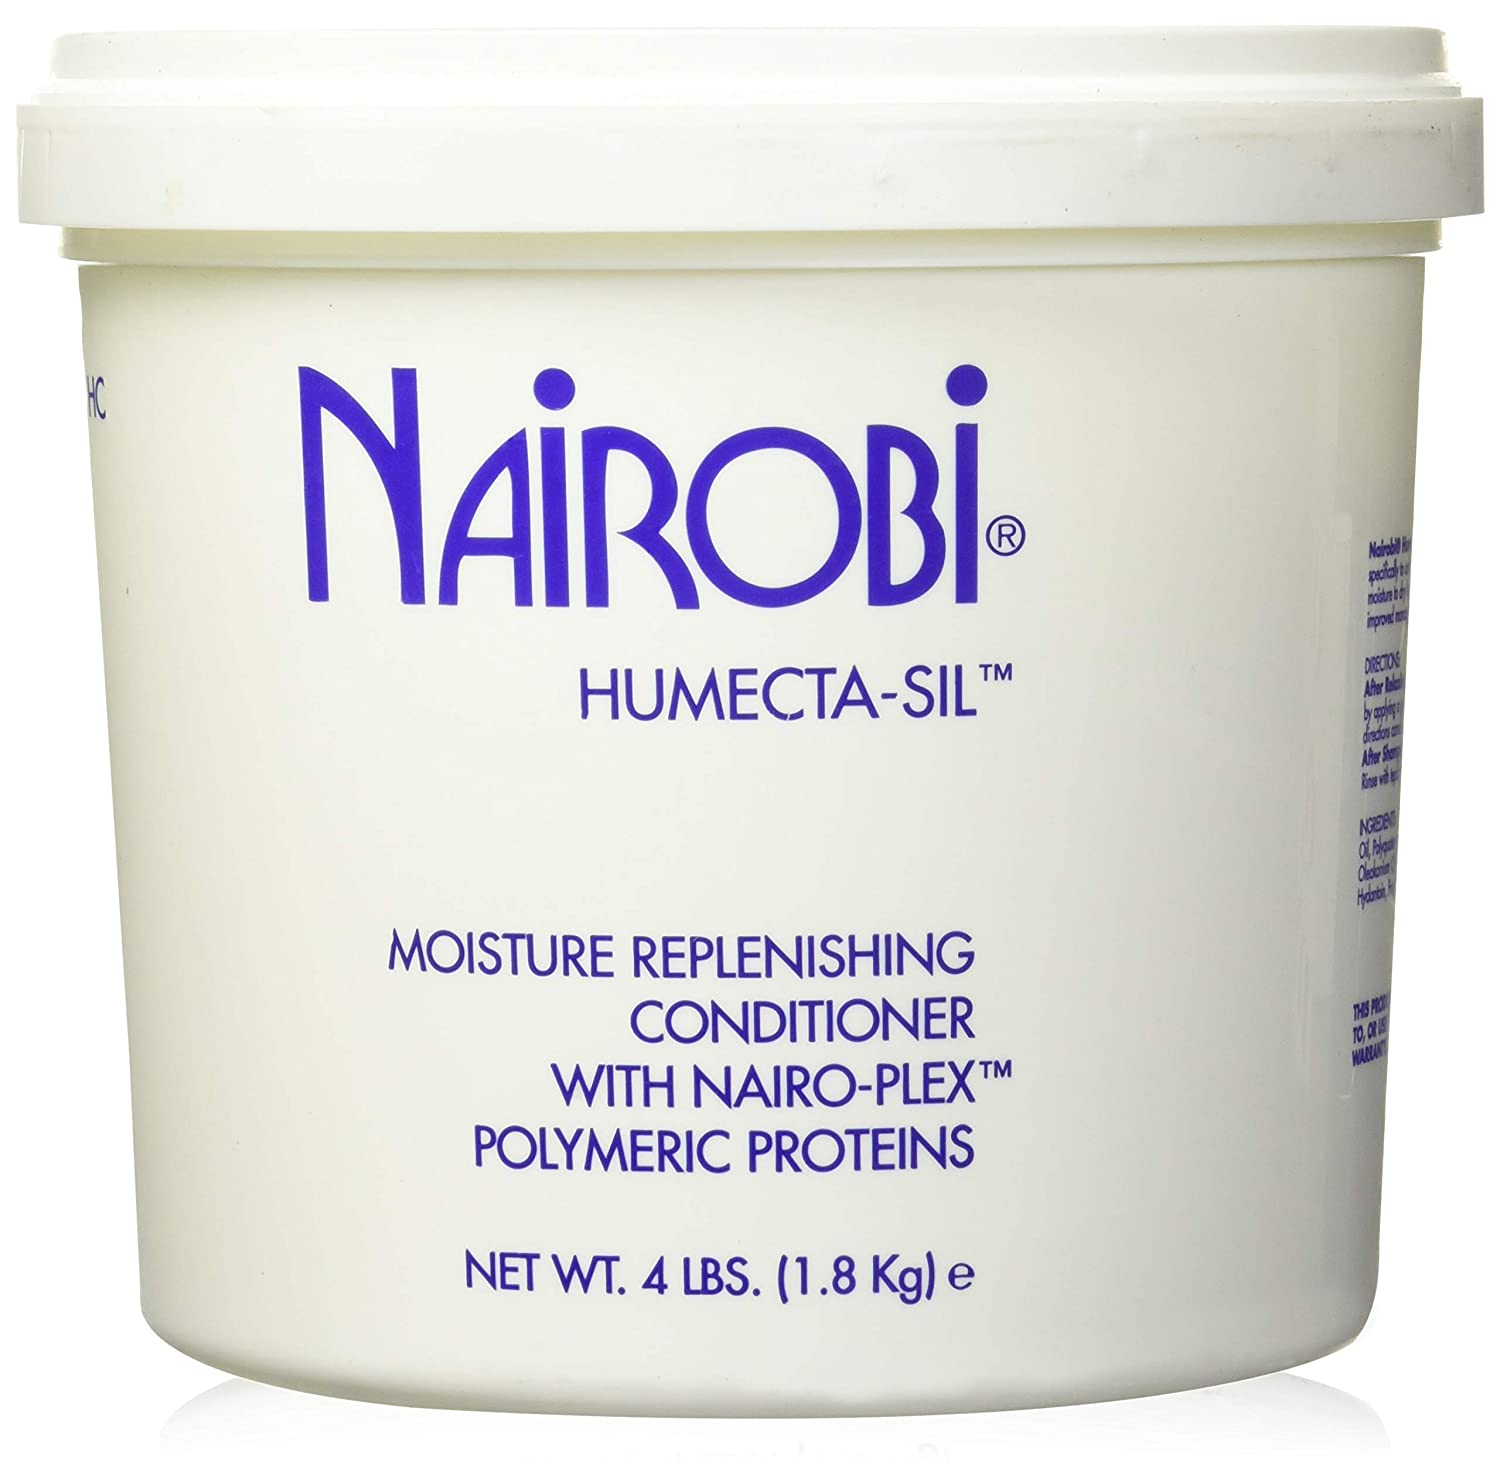 Nairobi Humecta-Sil Moisture by Replenishing Conditioner ギフ_包装 正規店